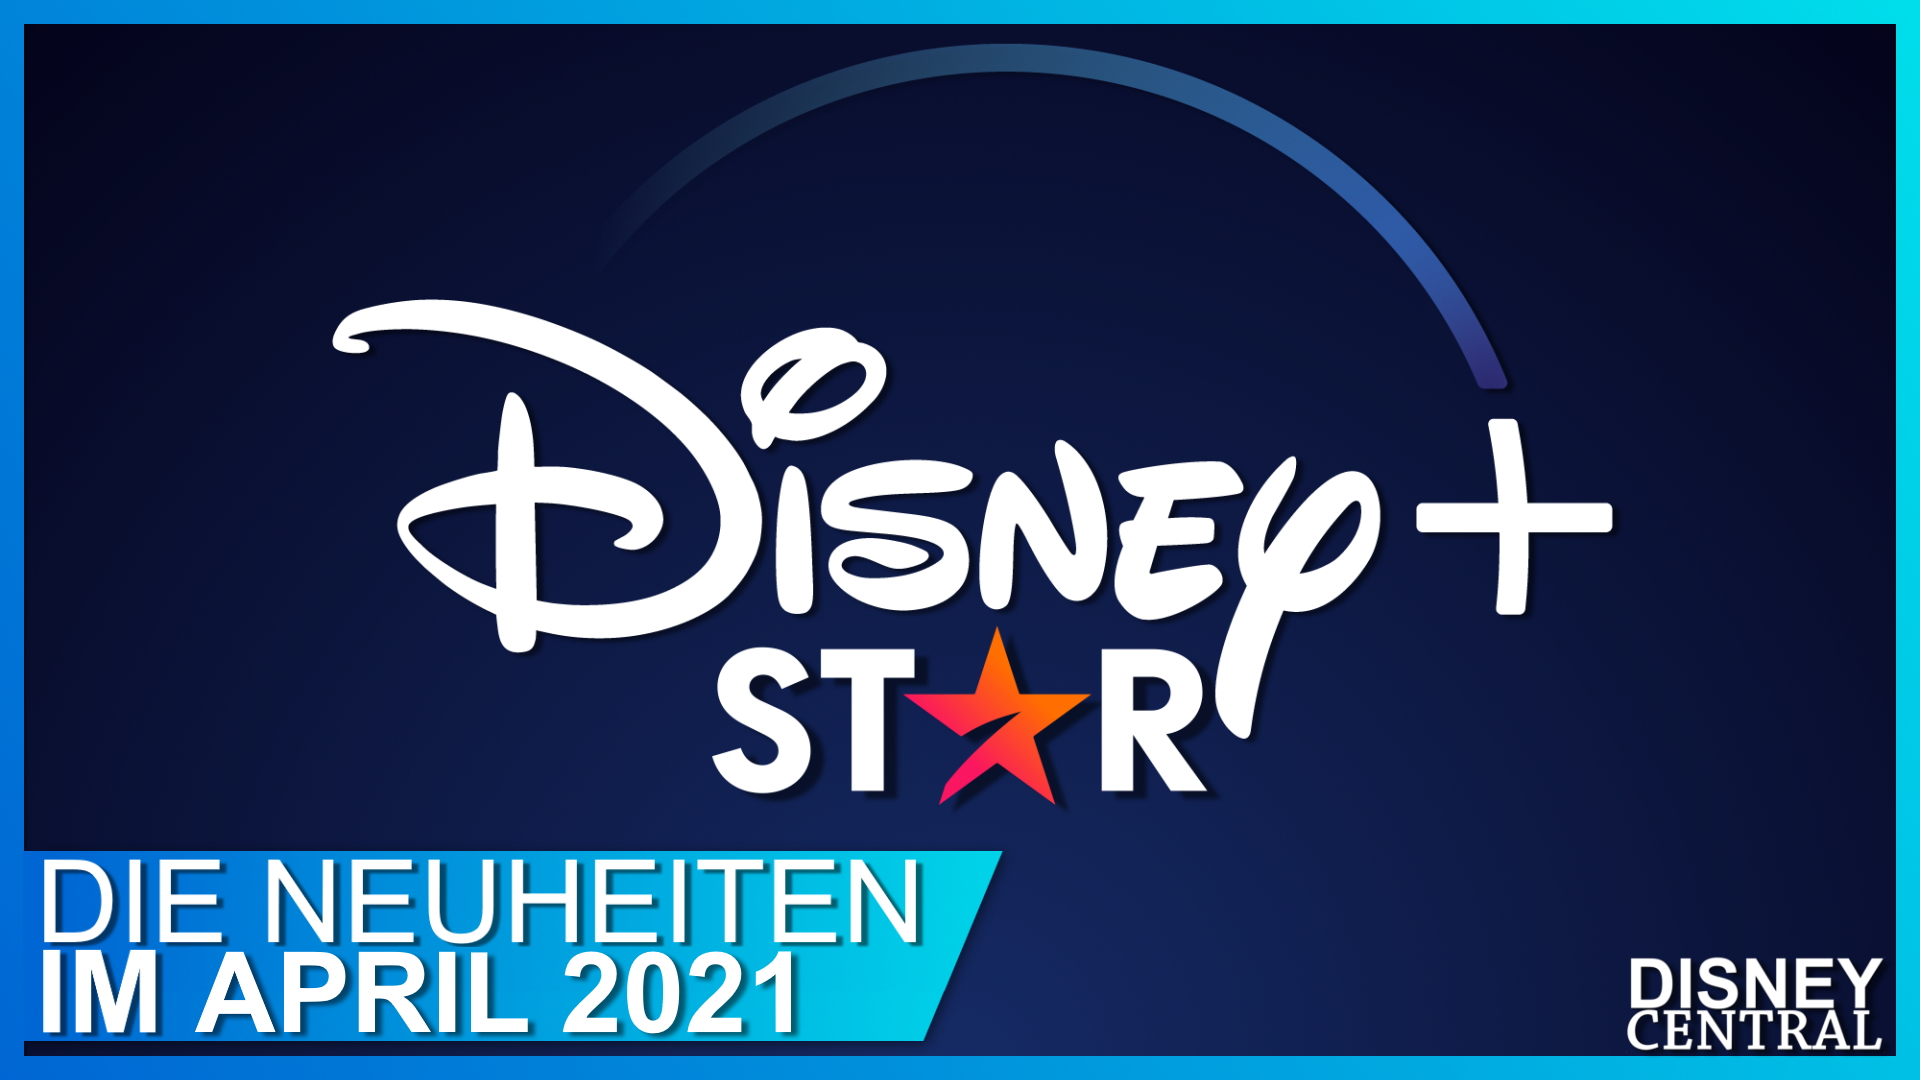 Disney+ Star Neuheiten April 2021